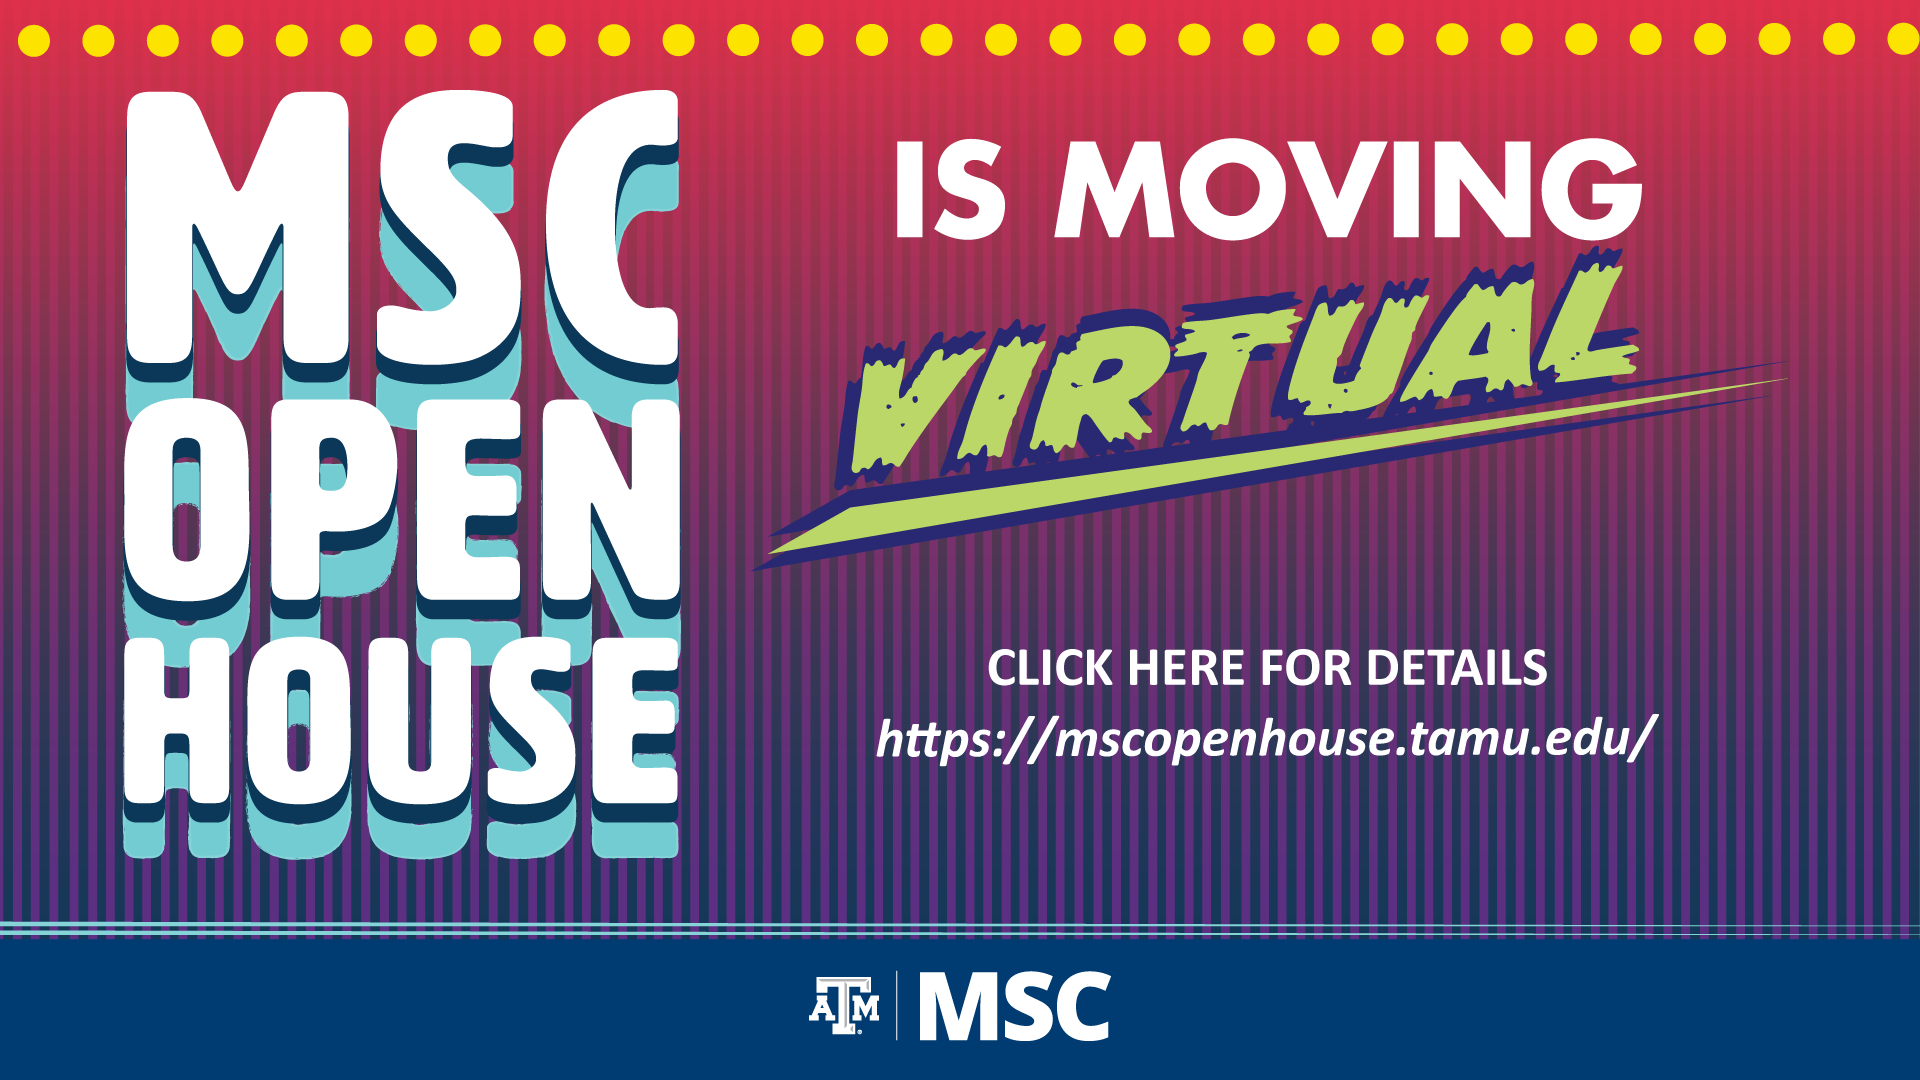 MSC Open House is going virtual!